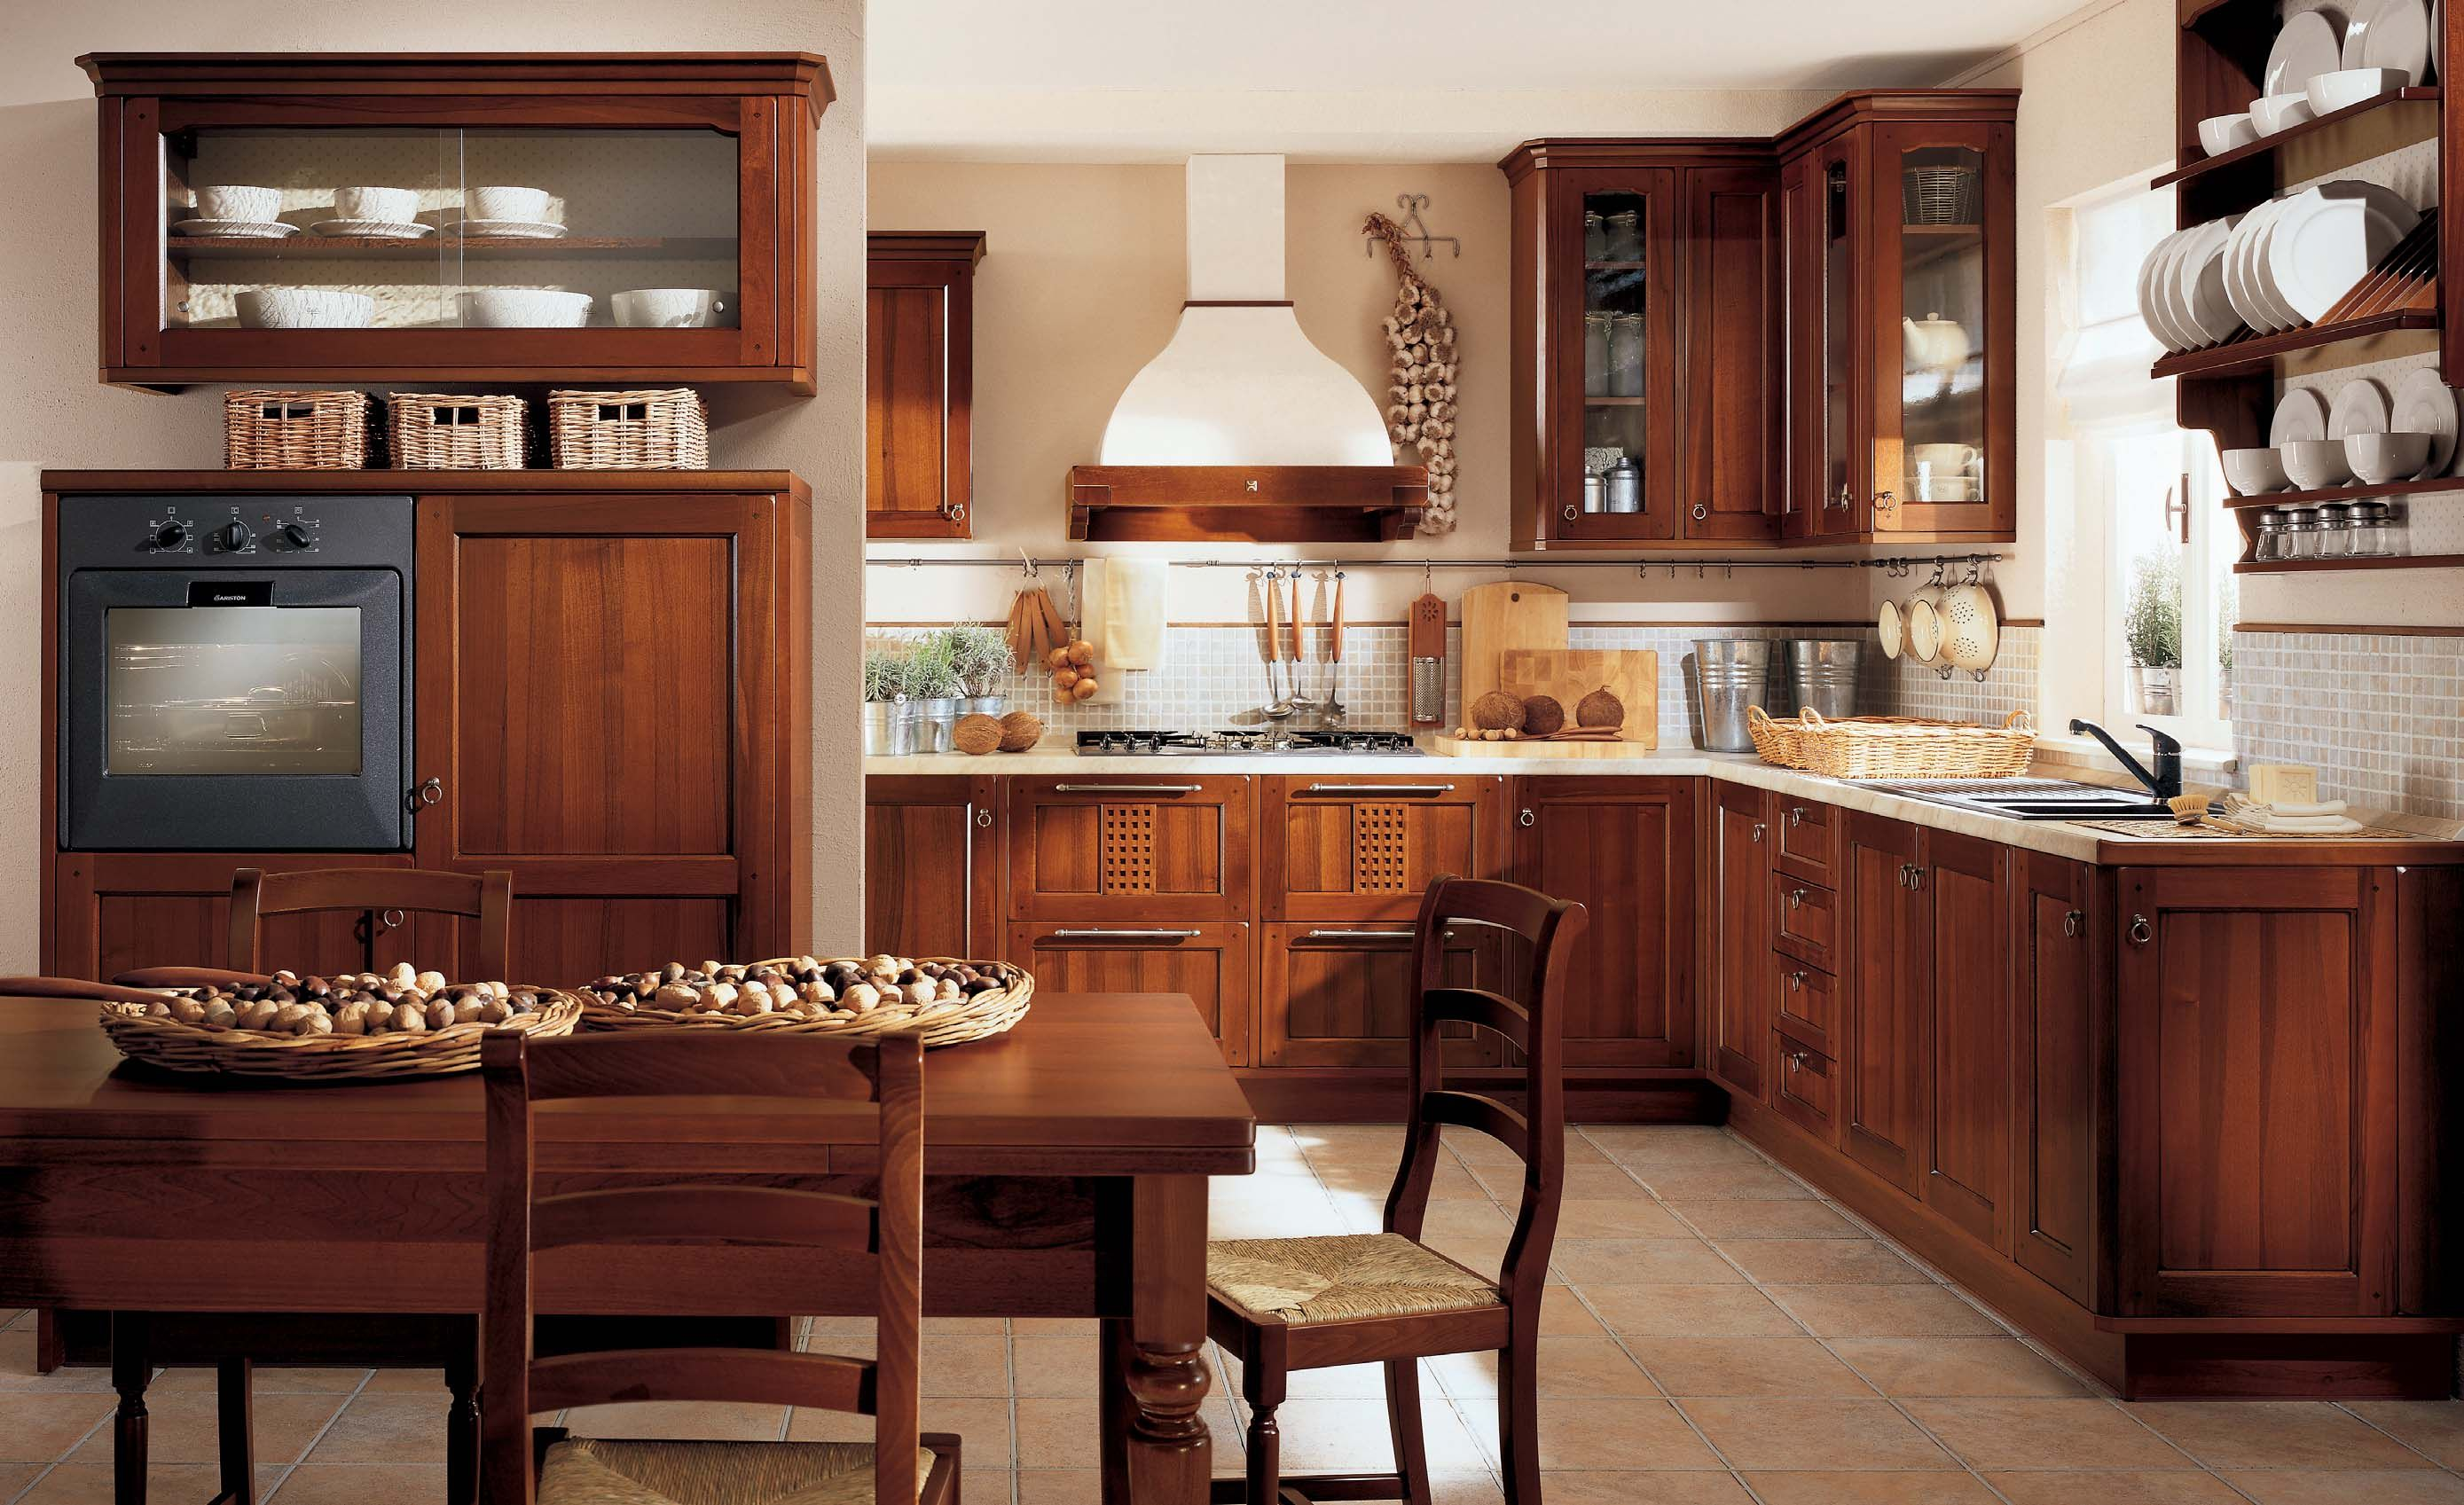 Designs From Berloni » Small Classic Lirica Kitchen Interior